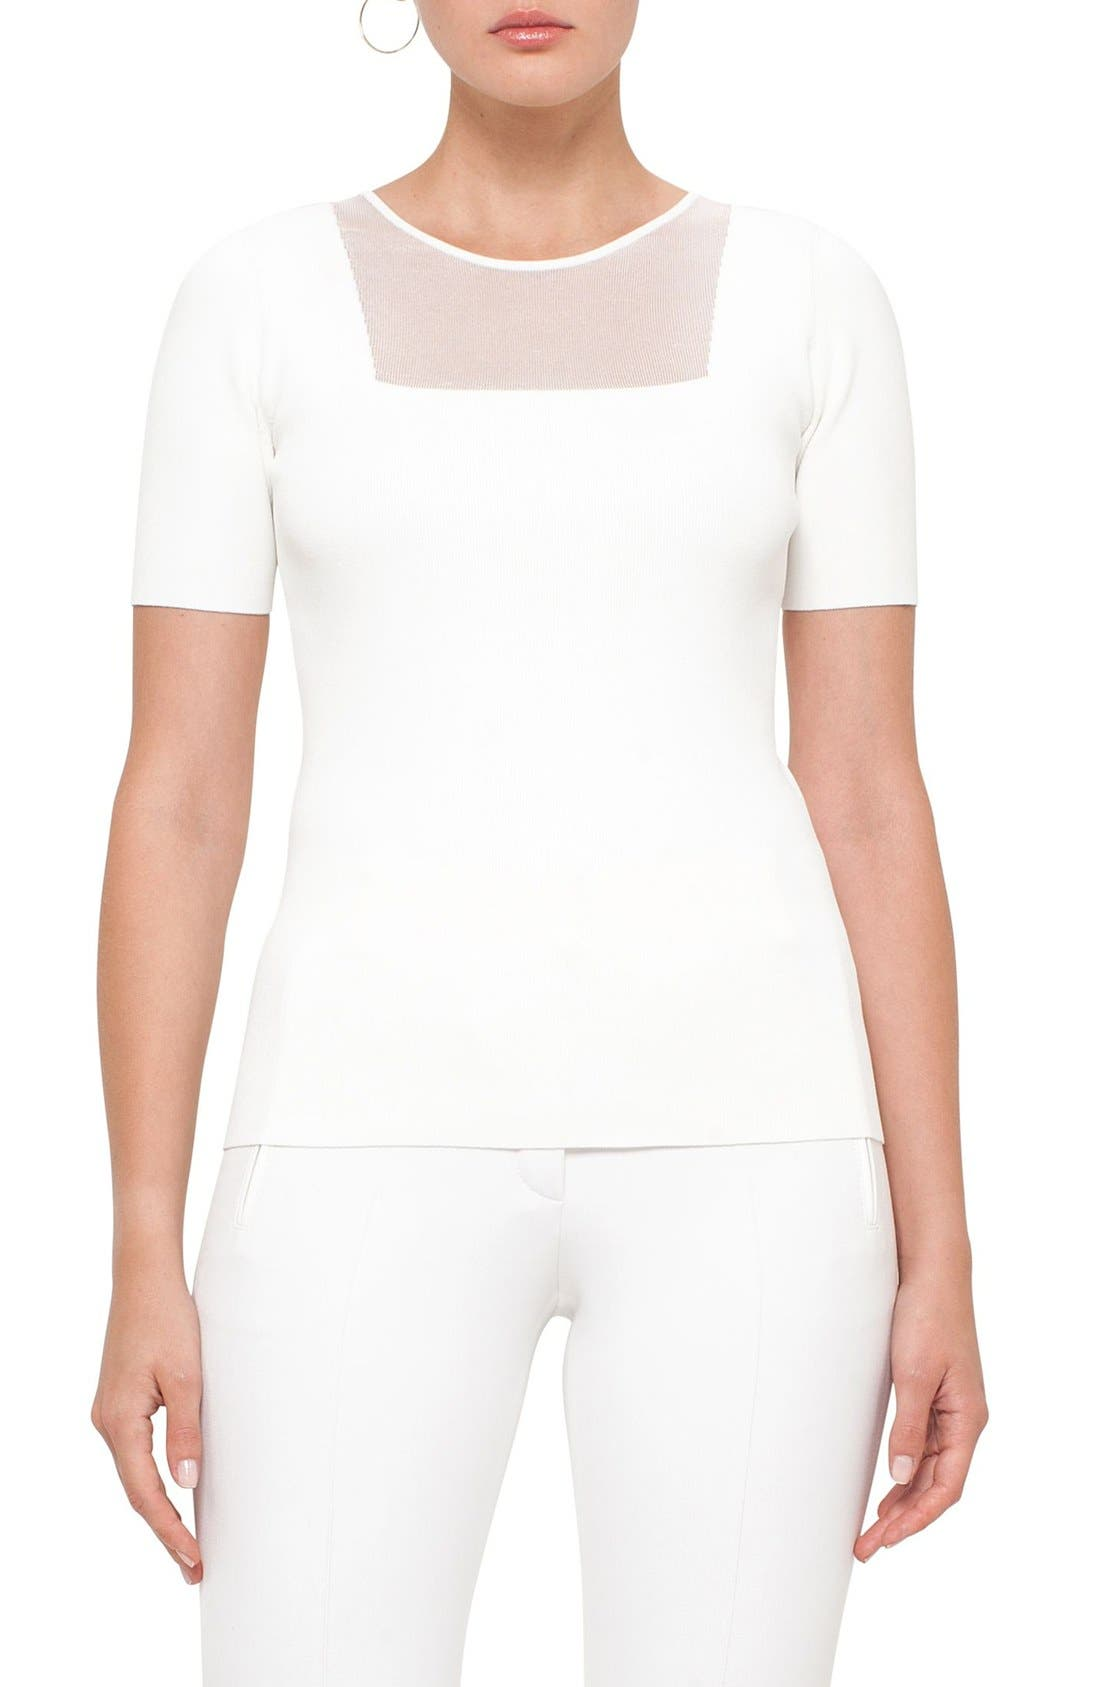 AKRIS PUNTO Sheer Panel Knit Top